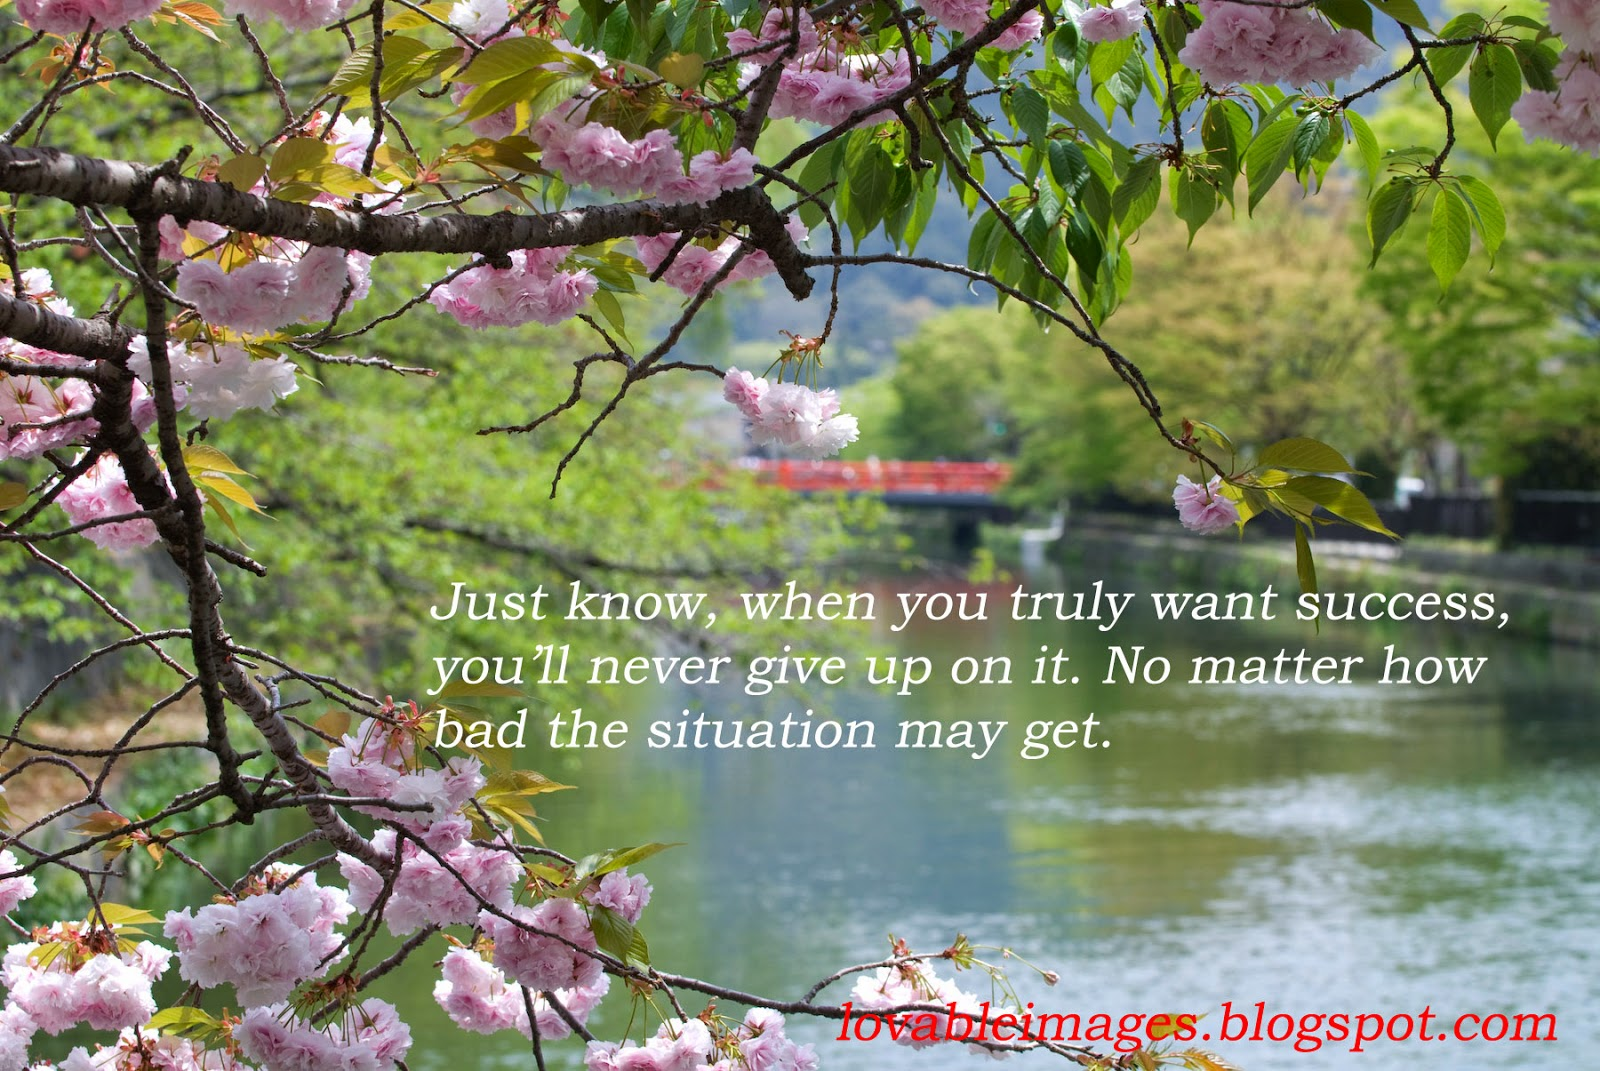 Lovable Images: Life Inspirational Quotes With Images Free ...